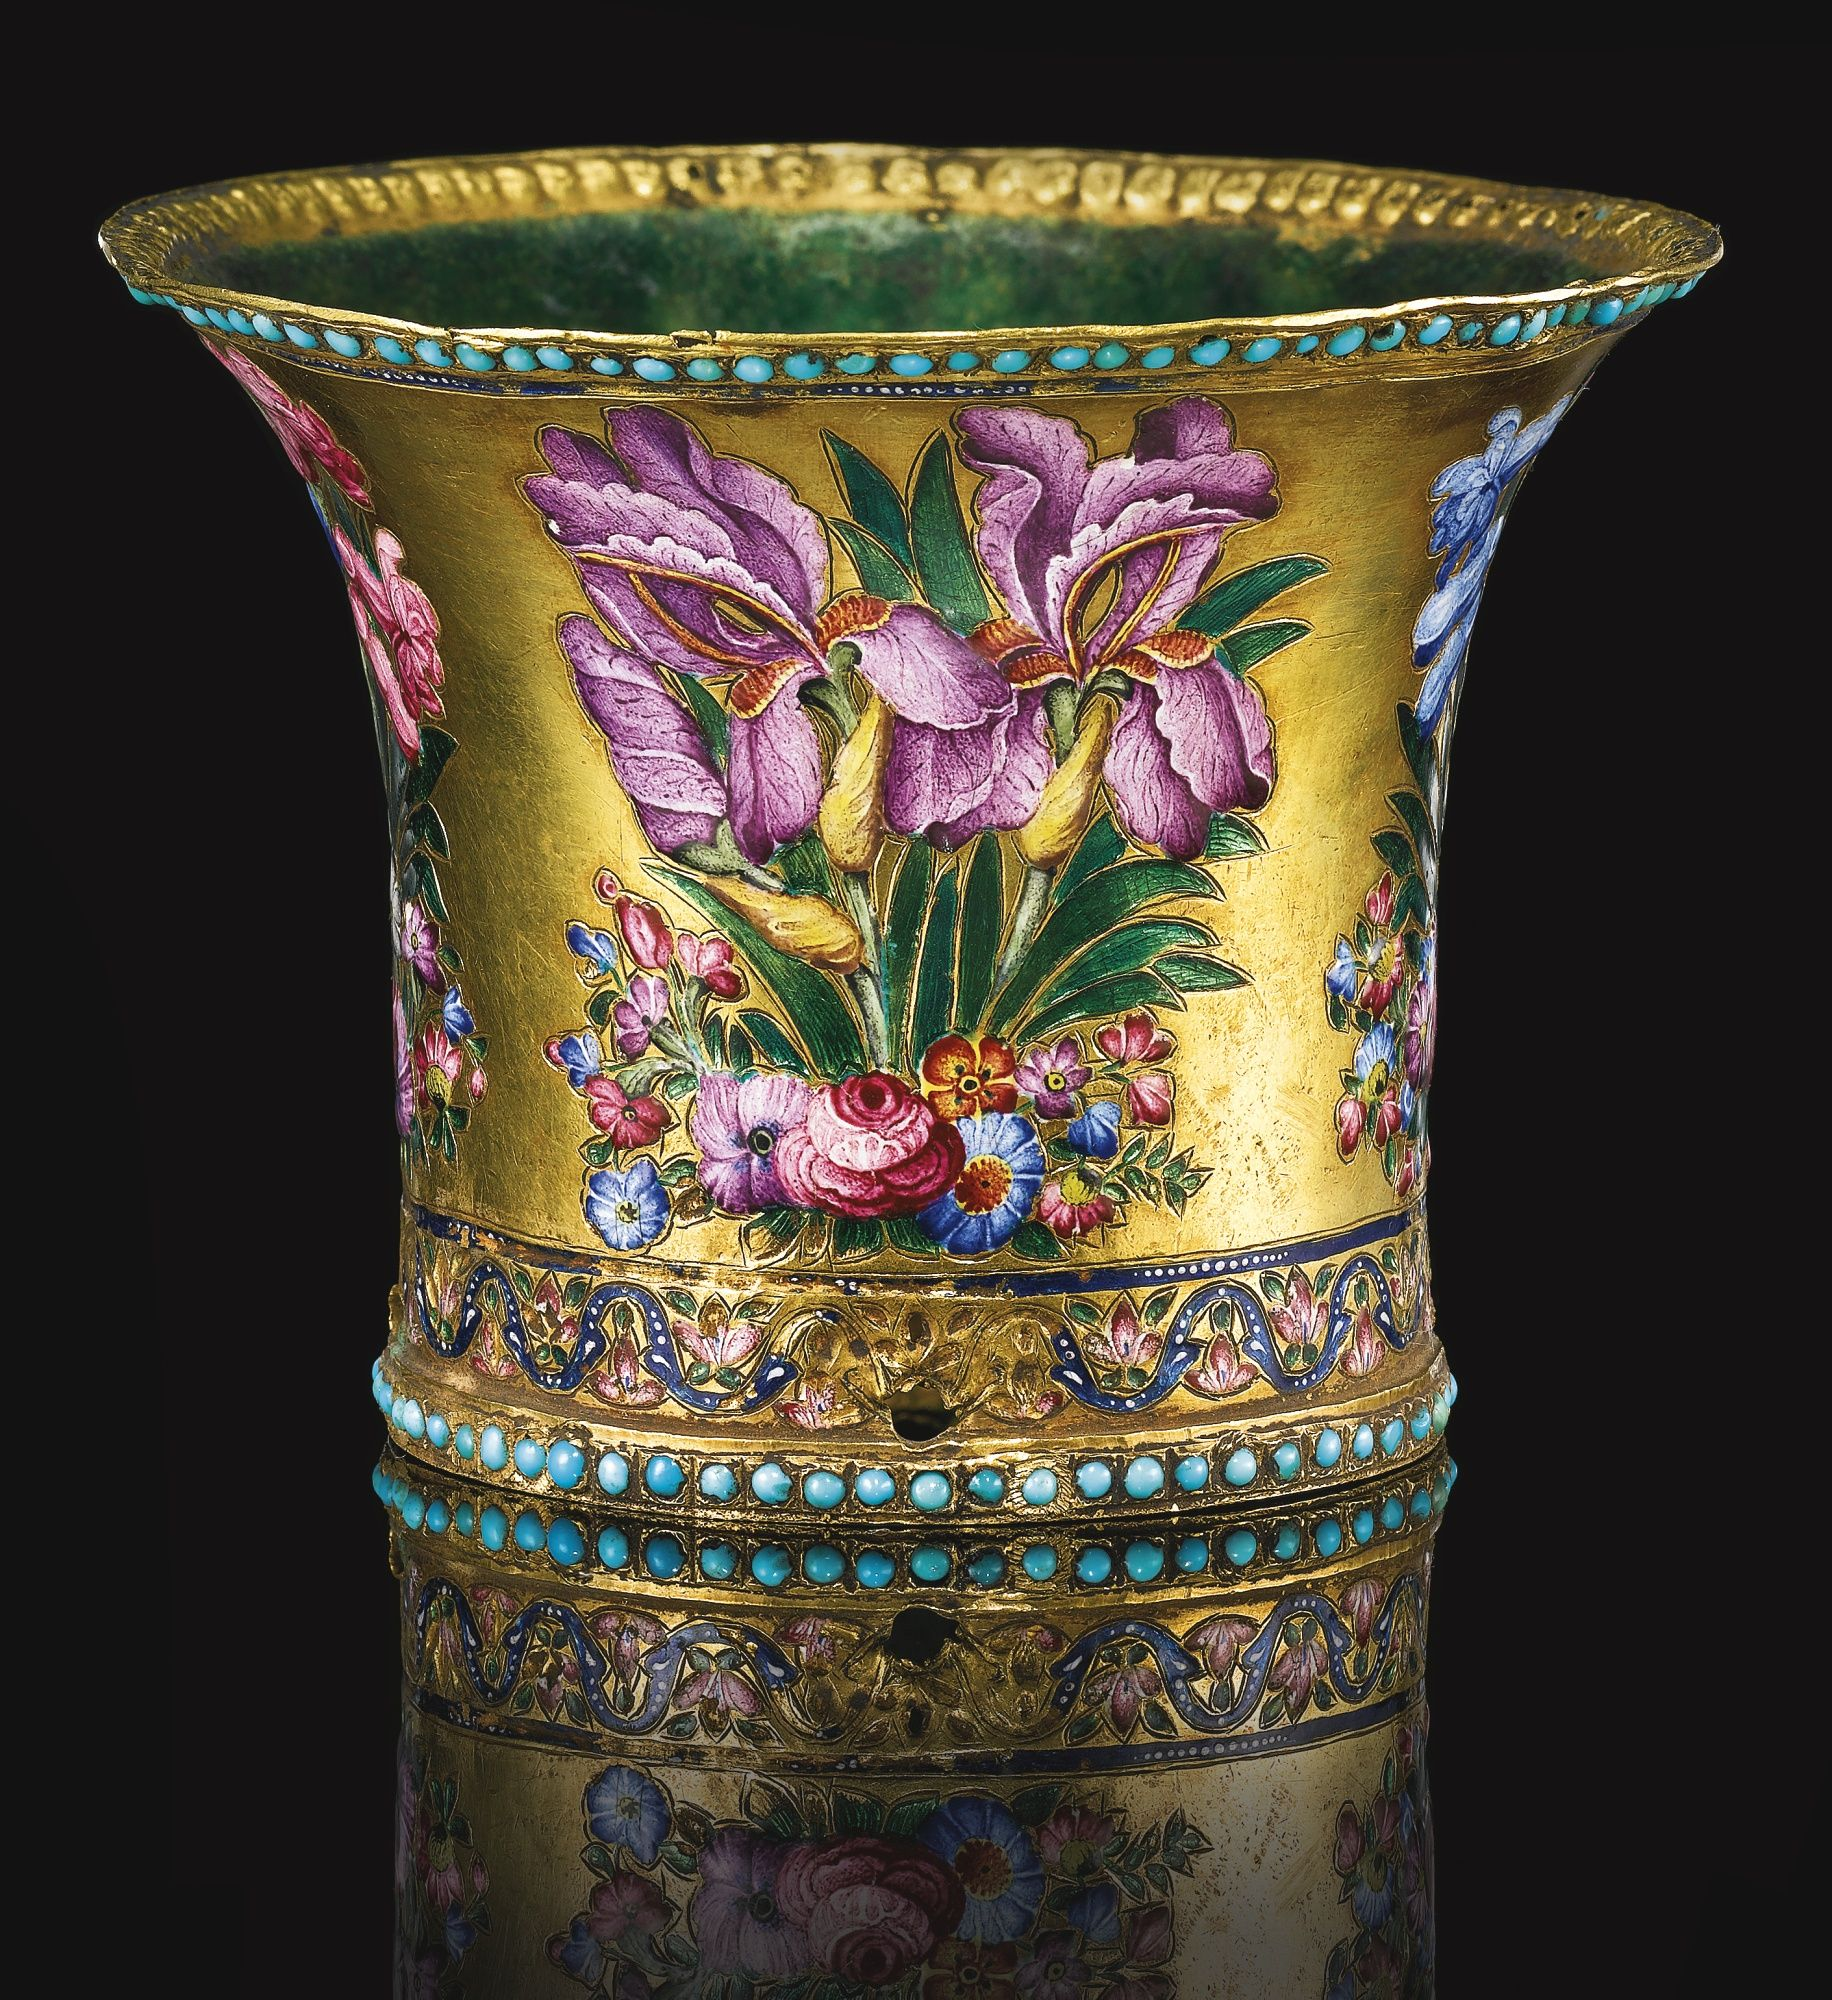 A FINE QAJAR GOLD AND POLYCHROME ENAMELLED GHALIAN CUP, PERSIA, 19TH CENTURY of waisted form with iris blossoms on floral tufts on a gold ground, between two bands of turquoise, the interior covered in a green enamel layer 6cm. height.